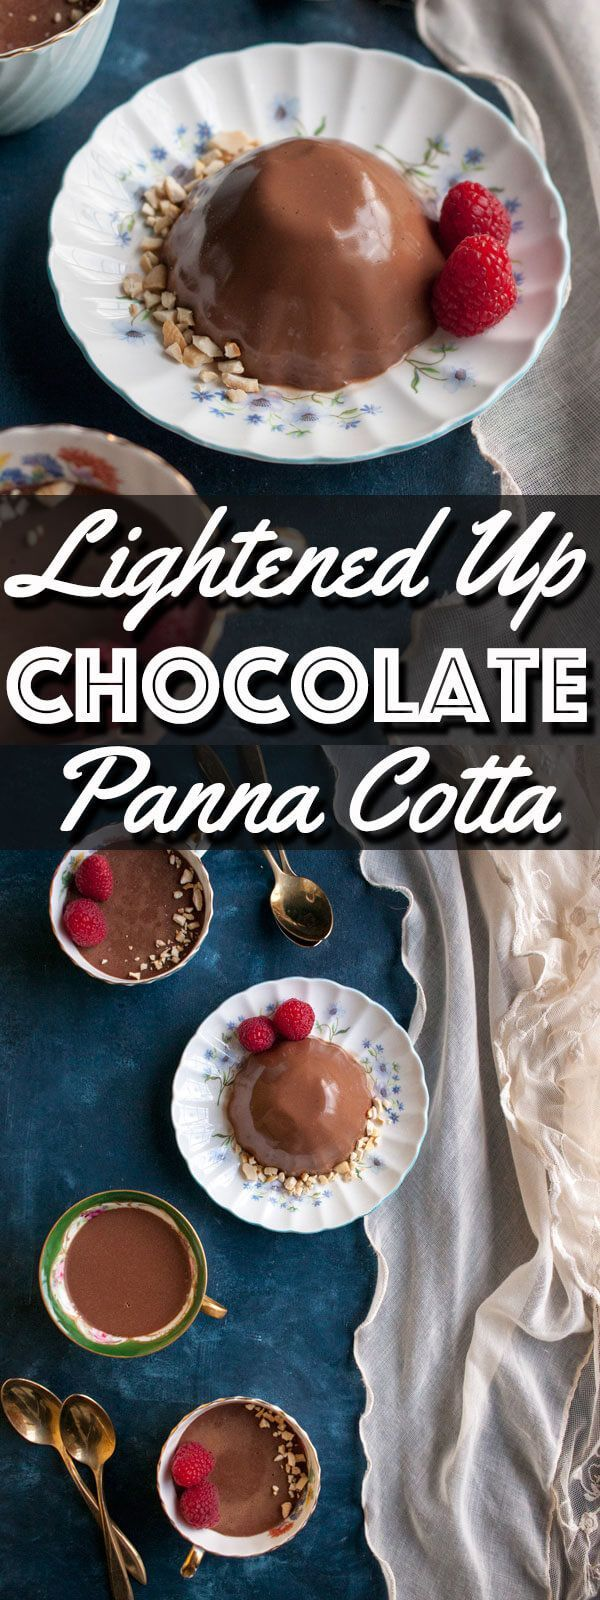 Lightened Up Chocolate Panna Cotta is a delicious and healthier version of a decadent dessert. This version of Panna Cotta will add a little sweetness to your day while still keep you on track with all of your New Year resolutions. | wildwildwhisk.com #ad #ProgressIsPerfection #CBias #CollectiveBias @Walmart @LoveMySilk